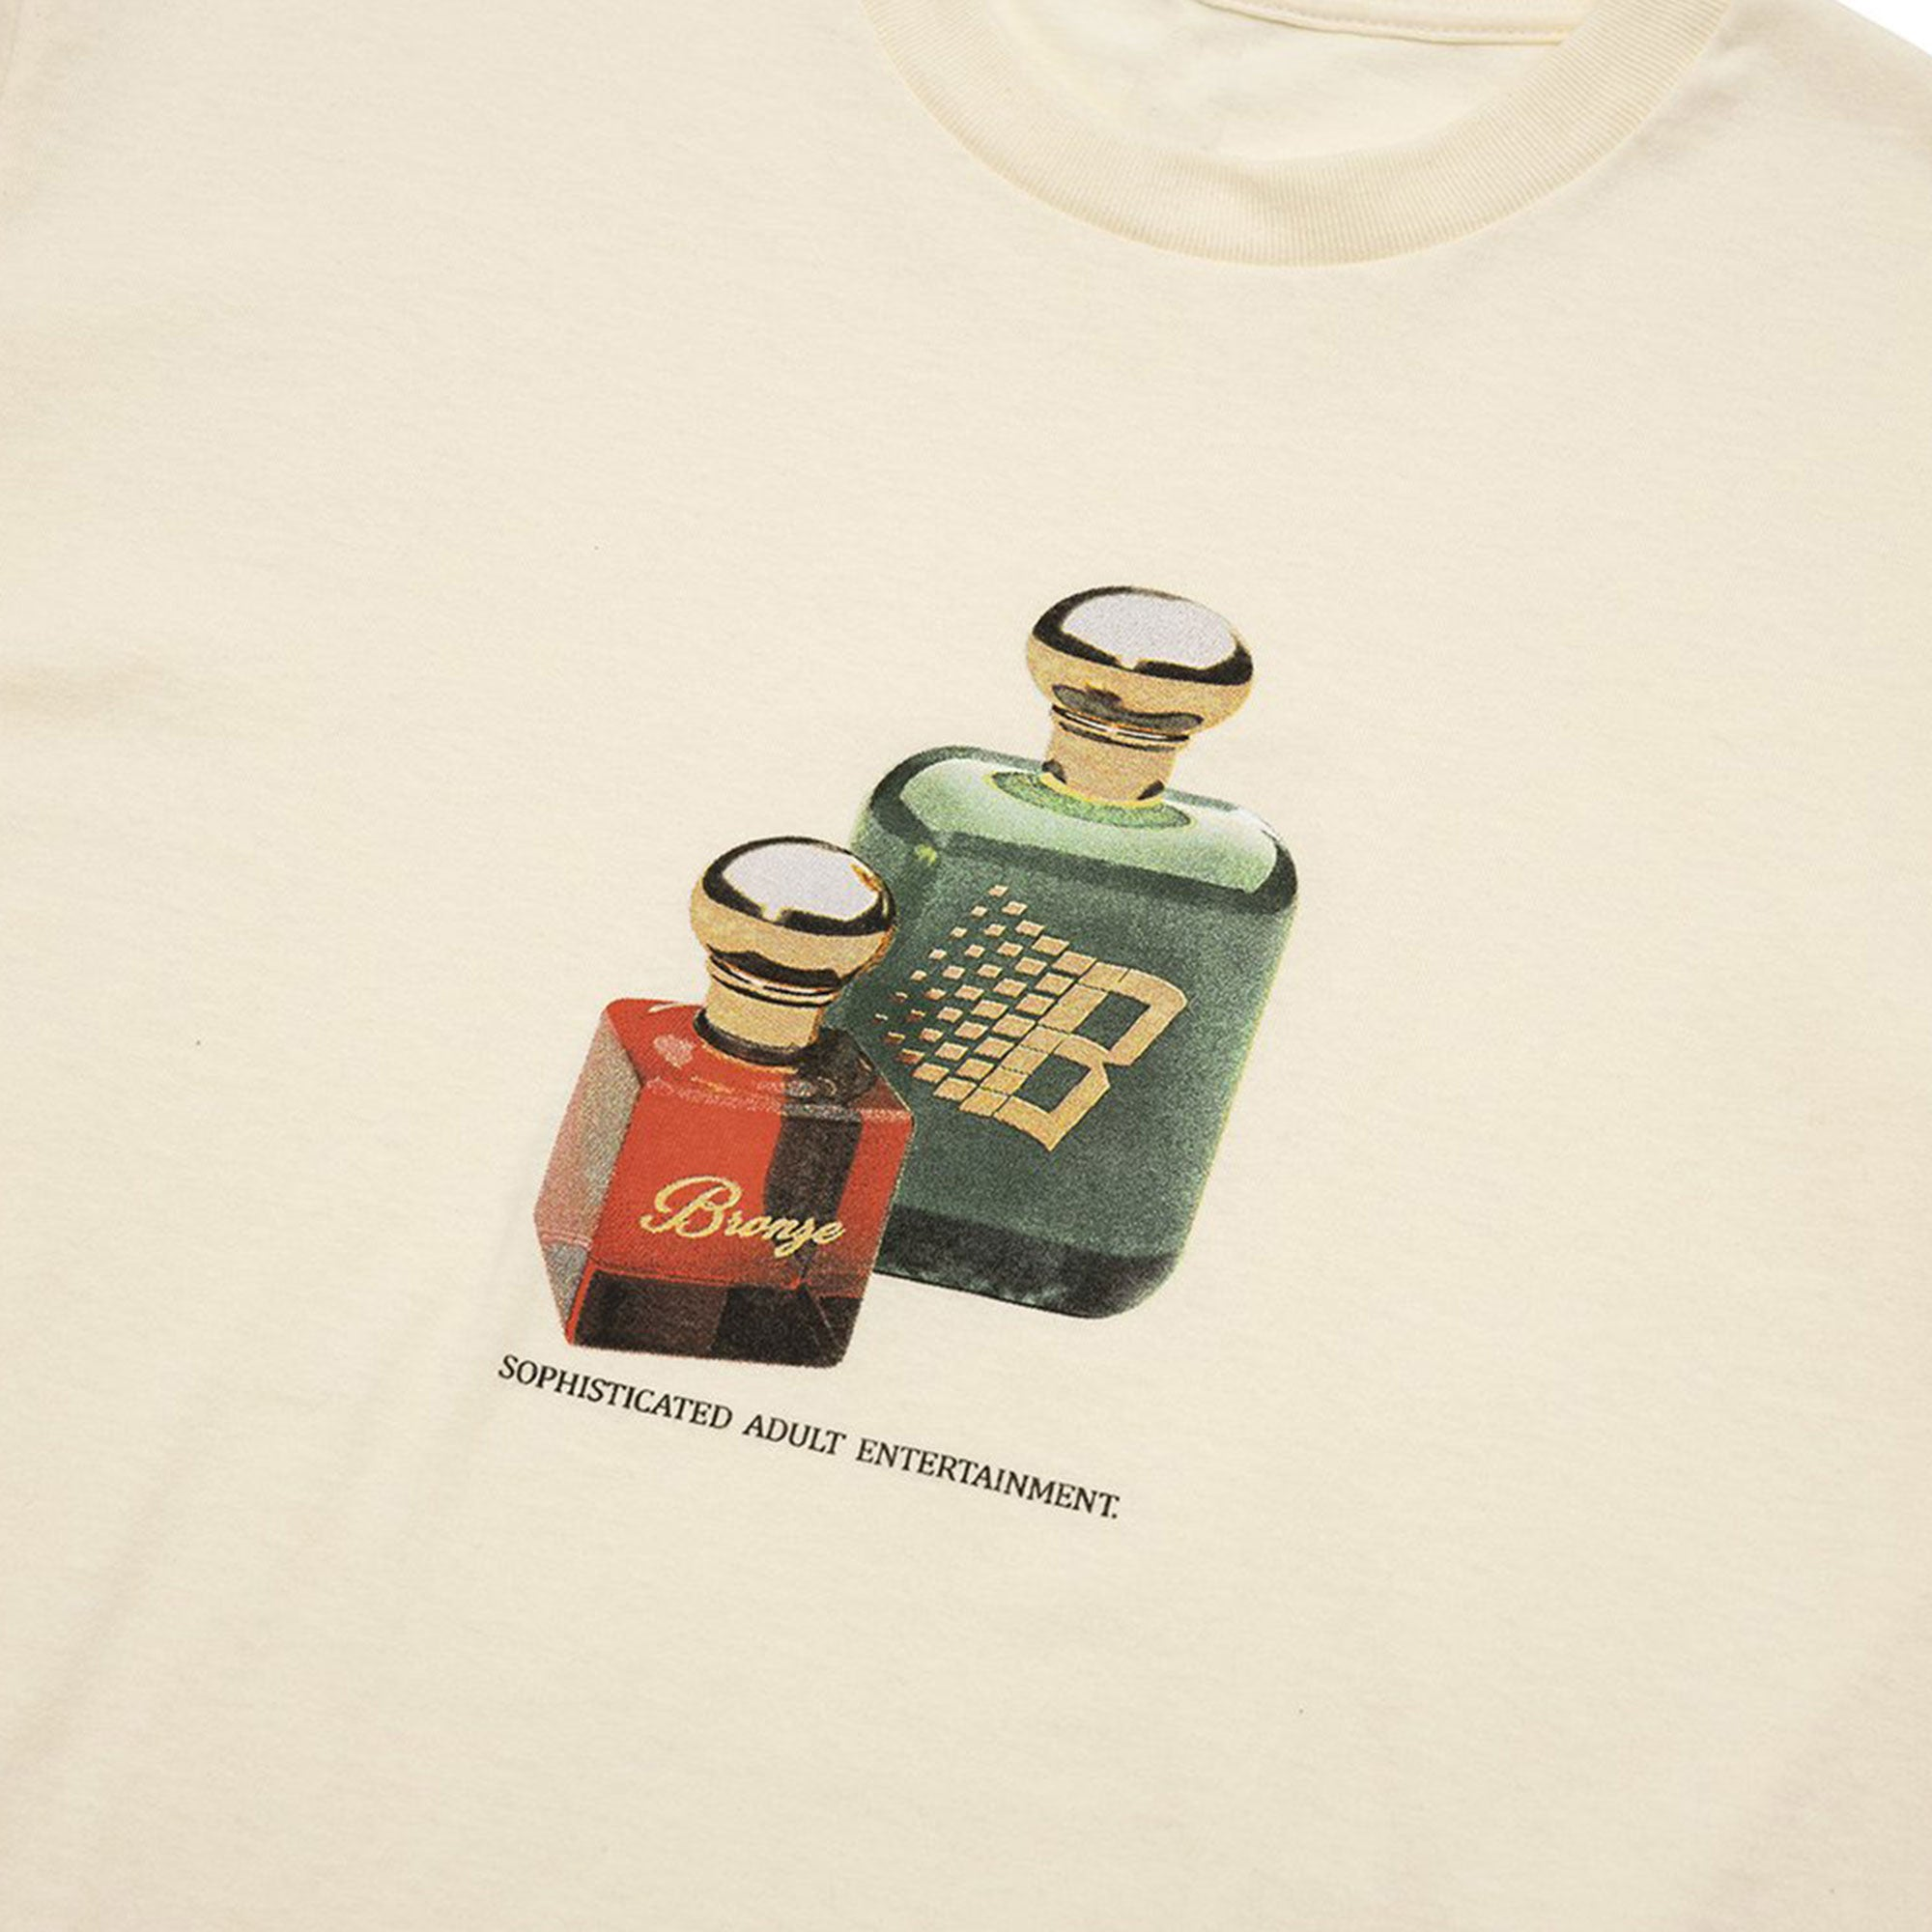 Bronze 56k Fragrance Tee Product Photo #2